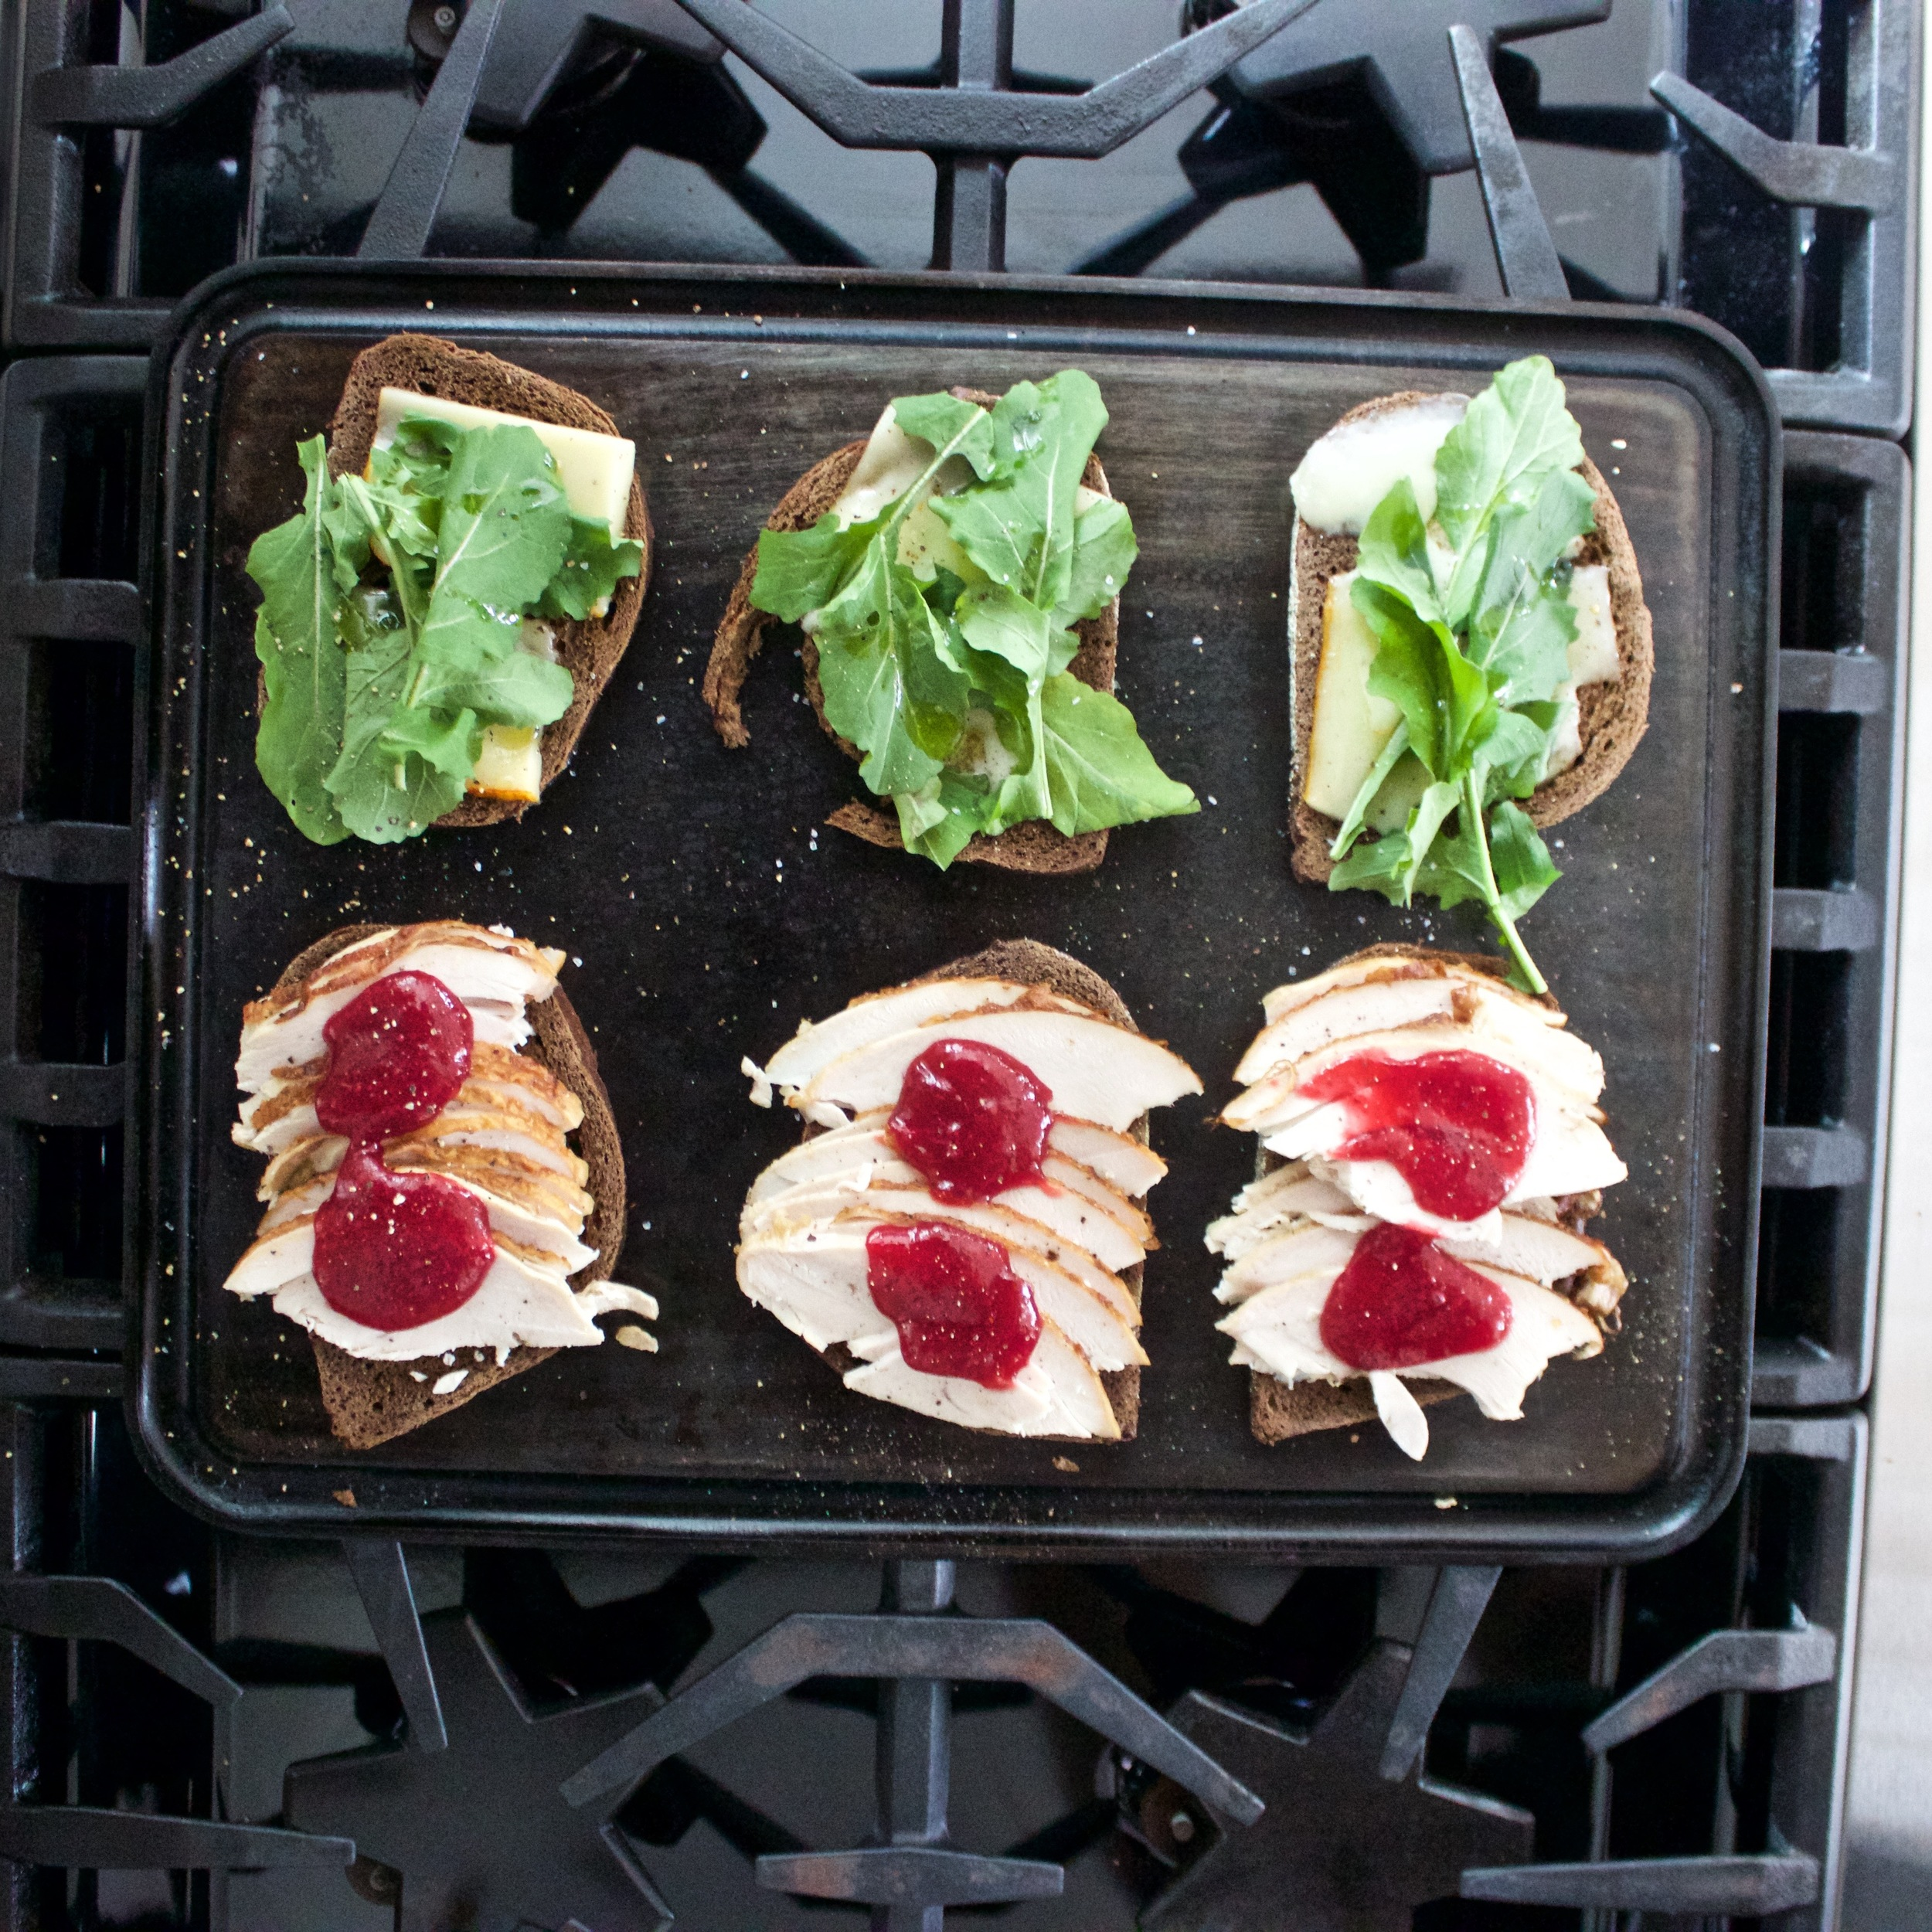 Thanksgiving leftover turkey sandwich, on the Baking Steel Griddle